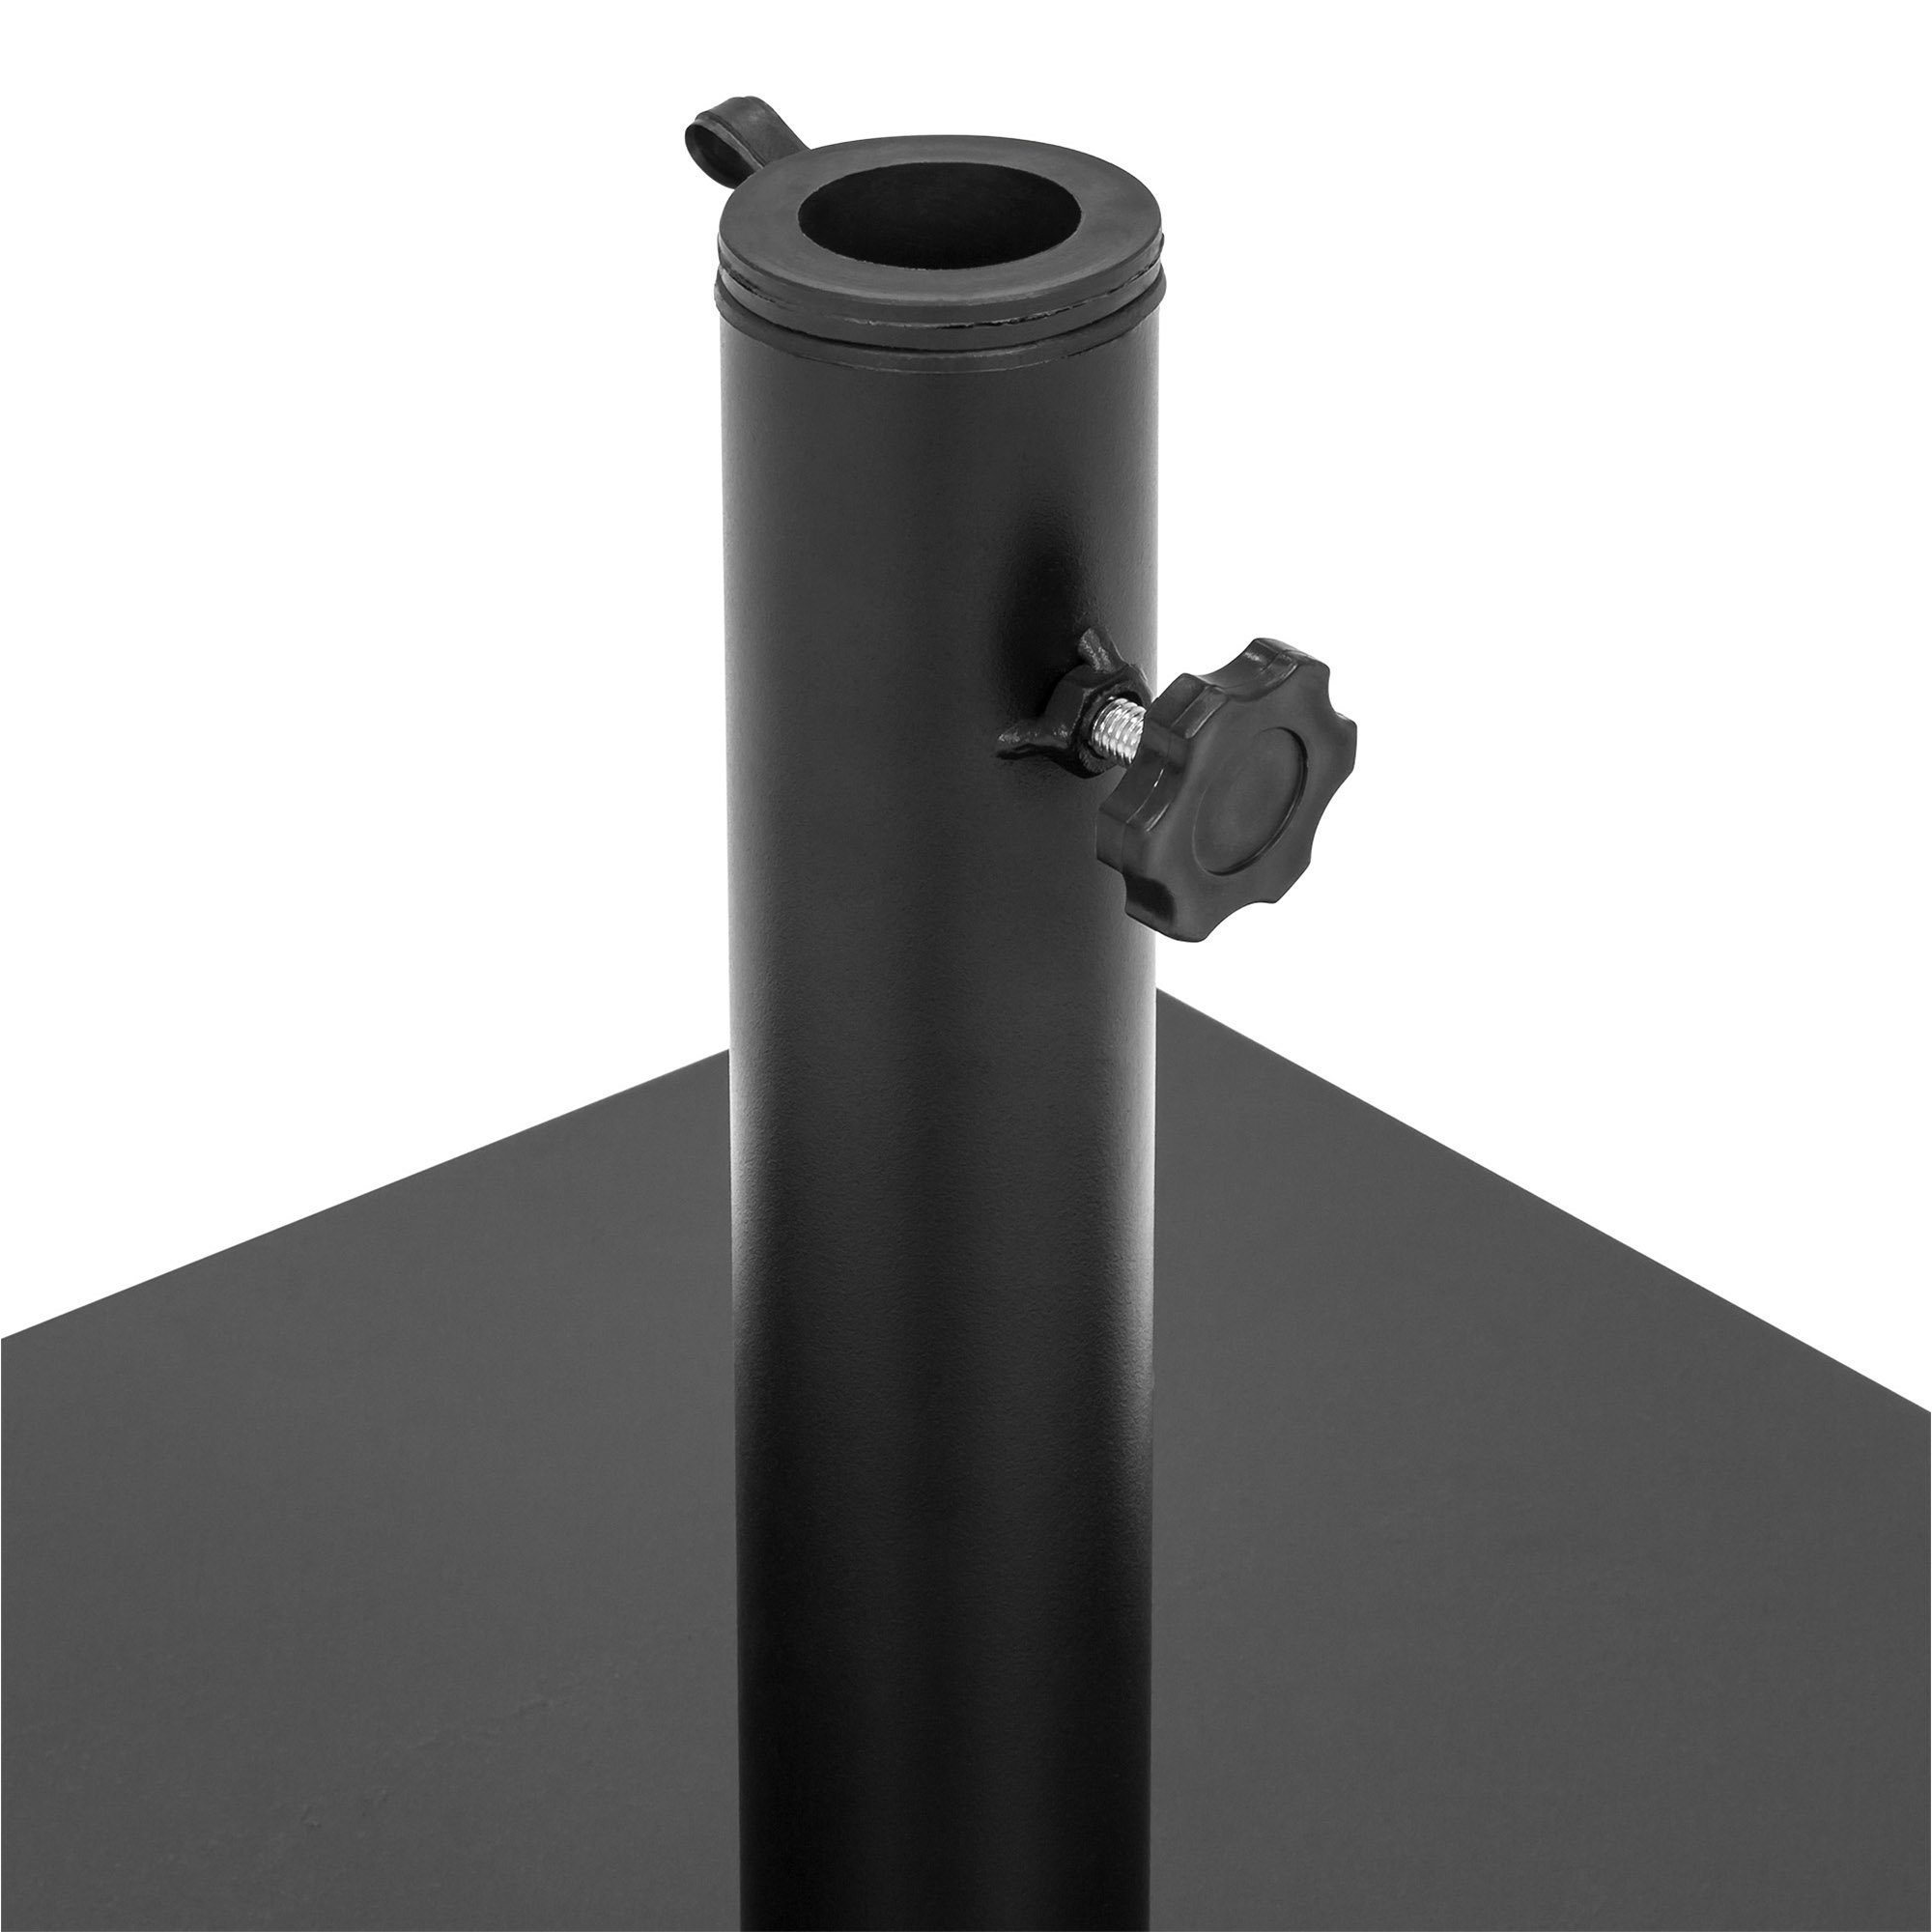 Best Choice Products 38.5lb Steel Square Patio Umbrella Base Stand w/Tightening Knob and Anchor Holes - Black by Best Choice Products (Image #3)